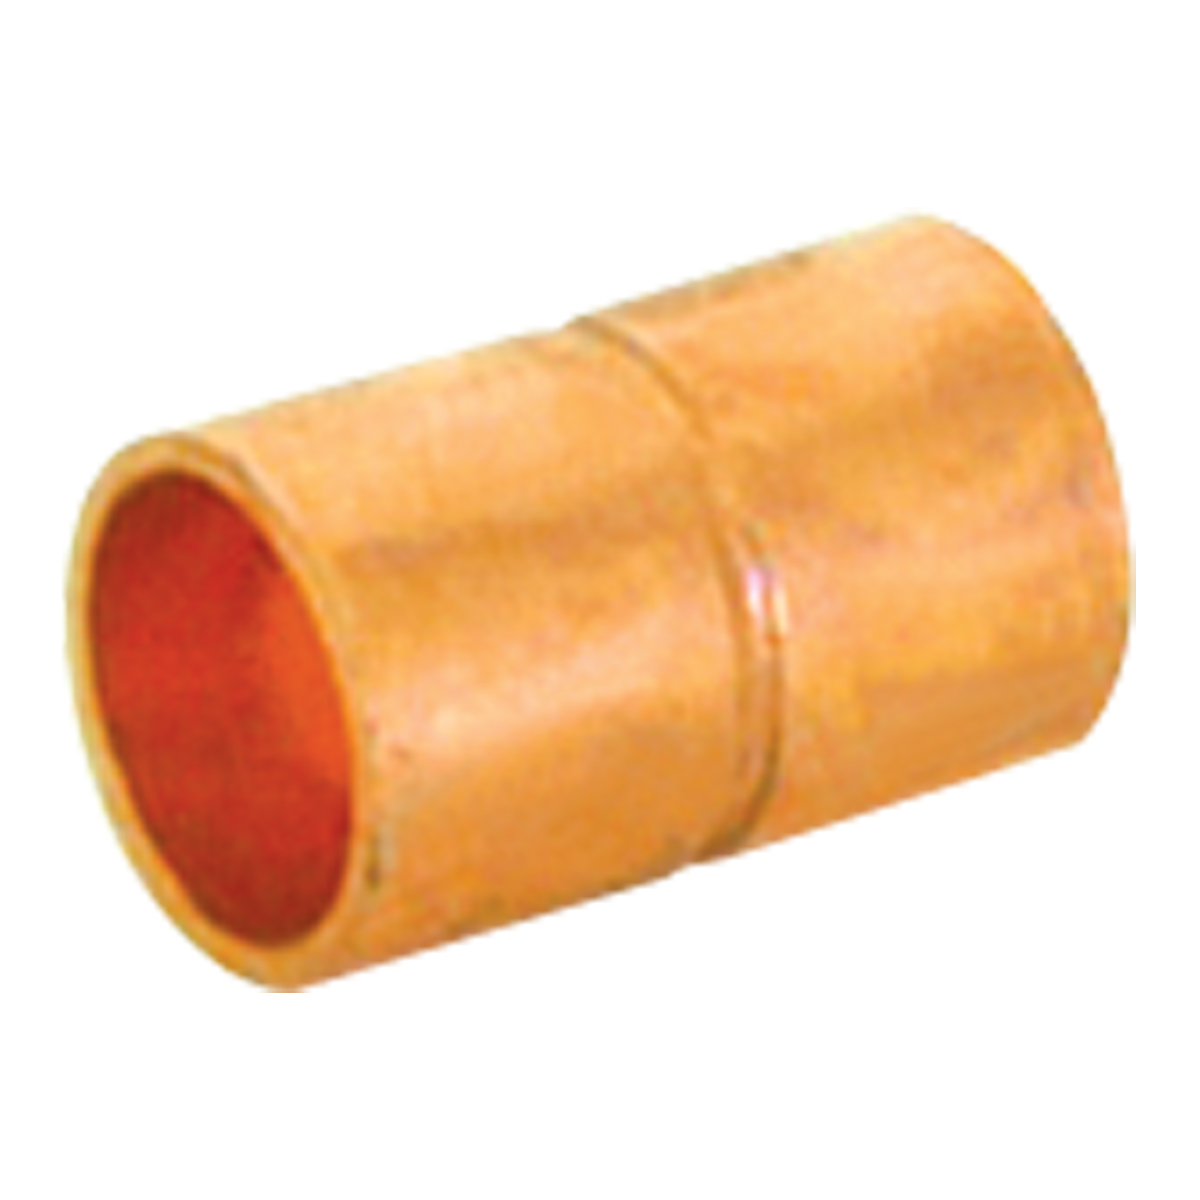 "1-1/4"" x 5/8"" ID Coupling with Stop - Copper"